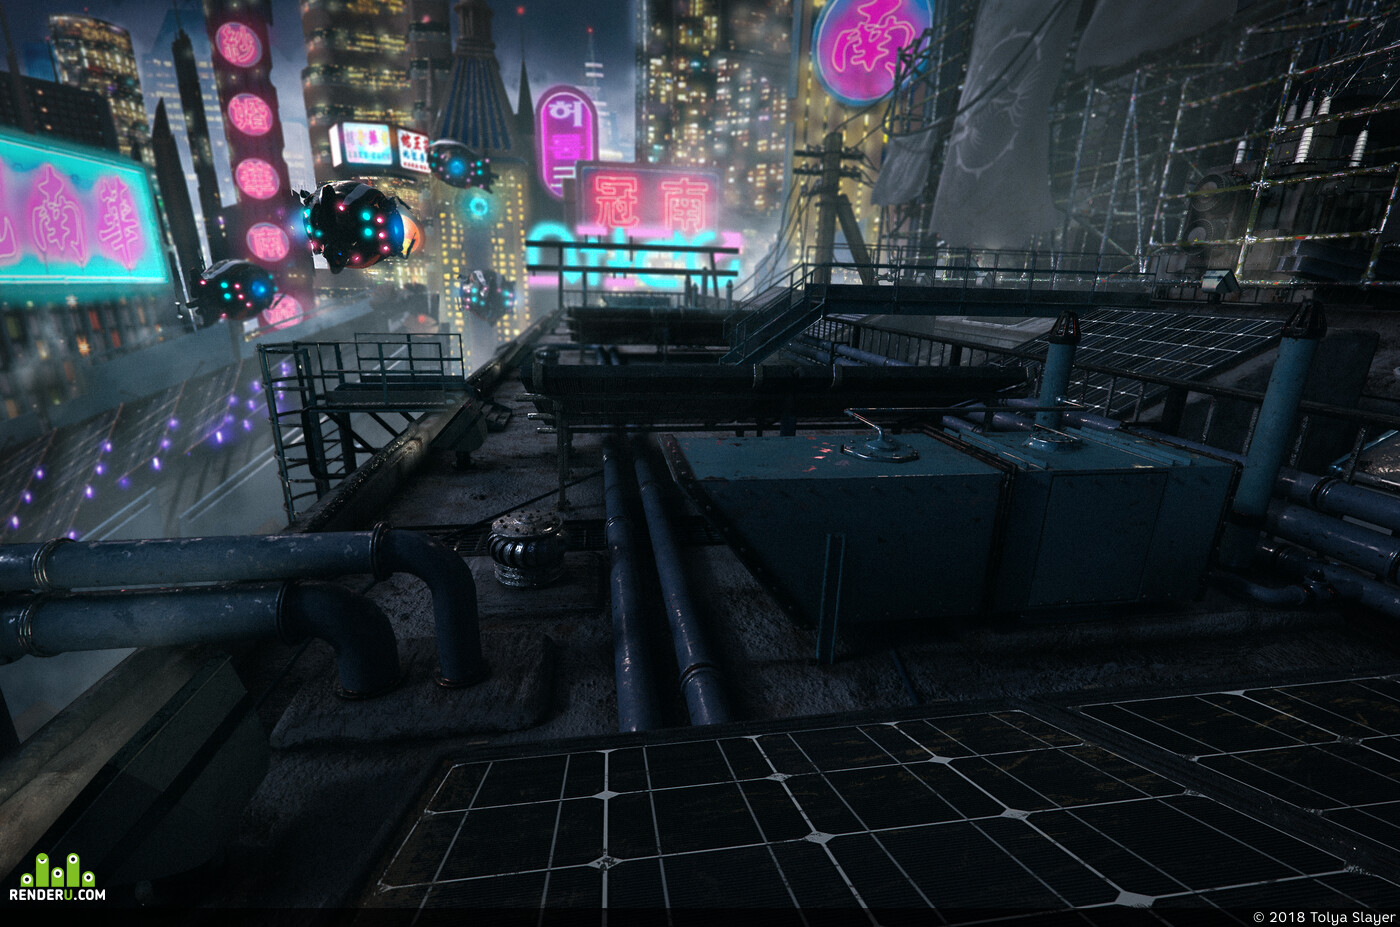 concept-art, 3dconcept, concept, Matte Painting, night city, cyber city, cyber punk